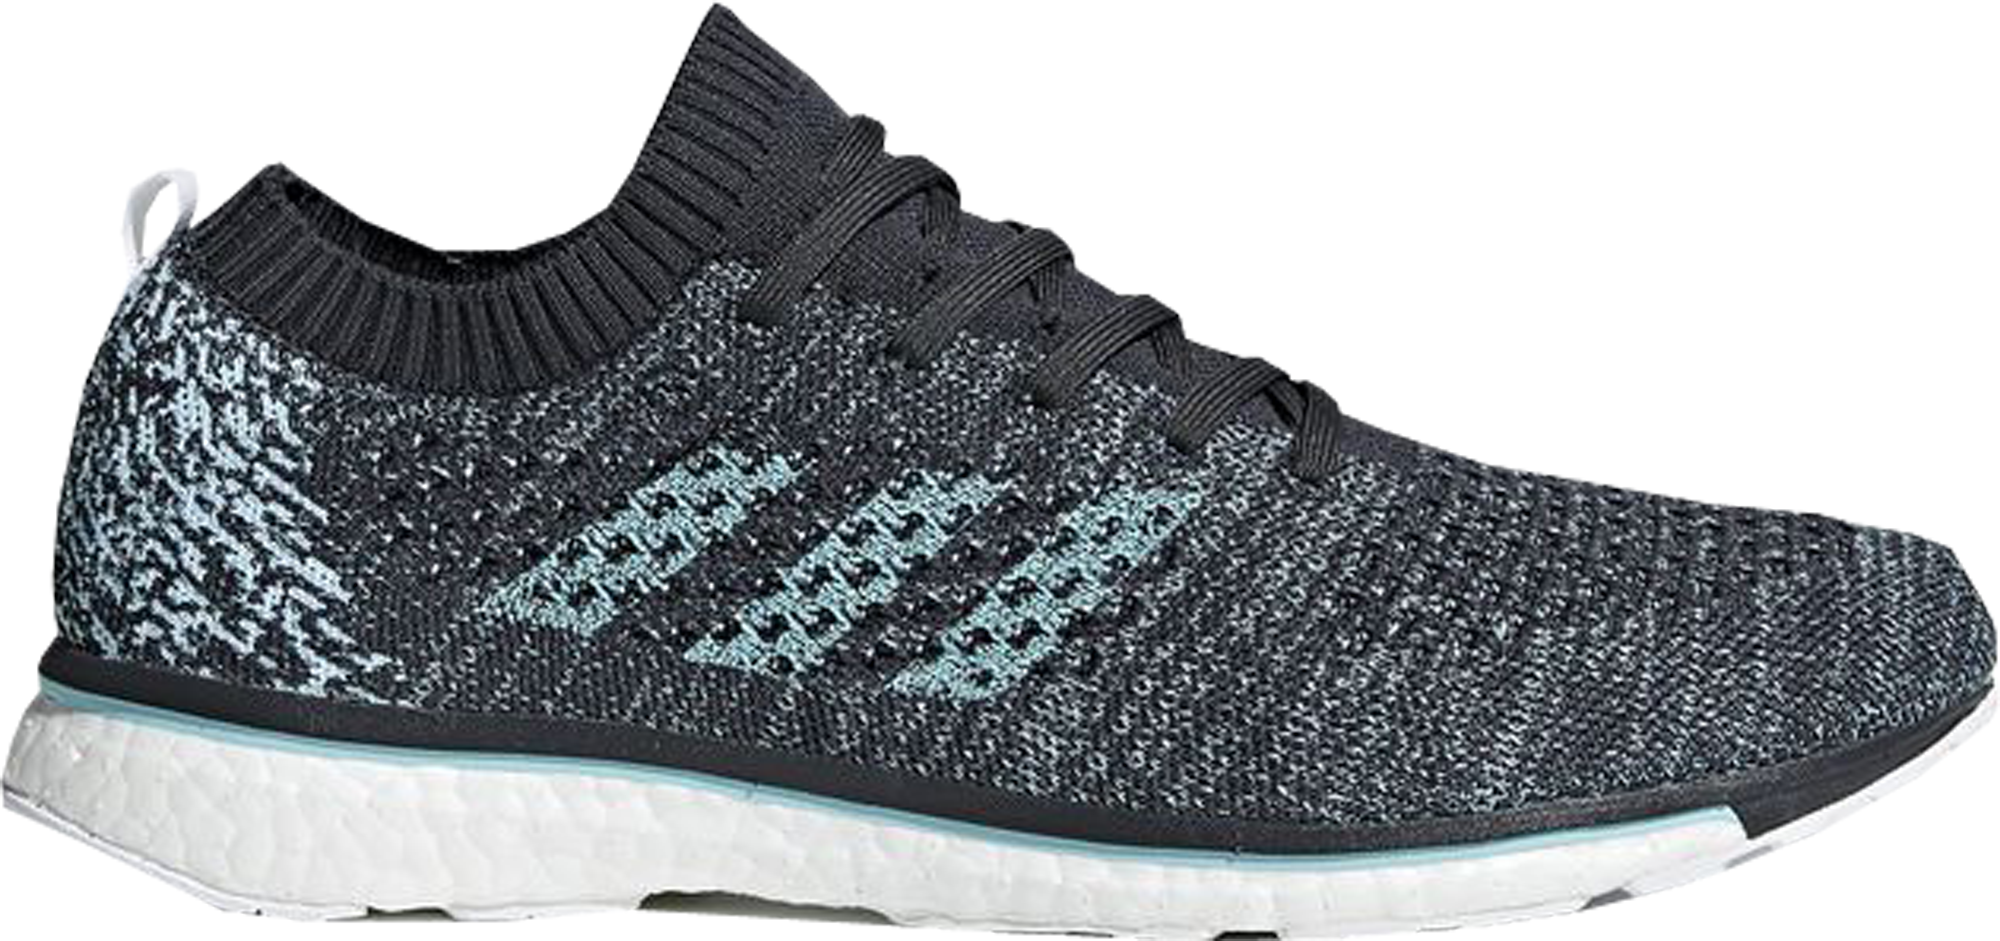 innovative design 6b6e7 f91cc ... coupon for adidas adizero prime boost parley carbon 4fa04 c10ea